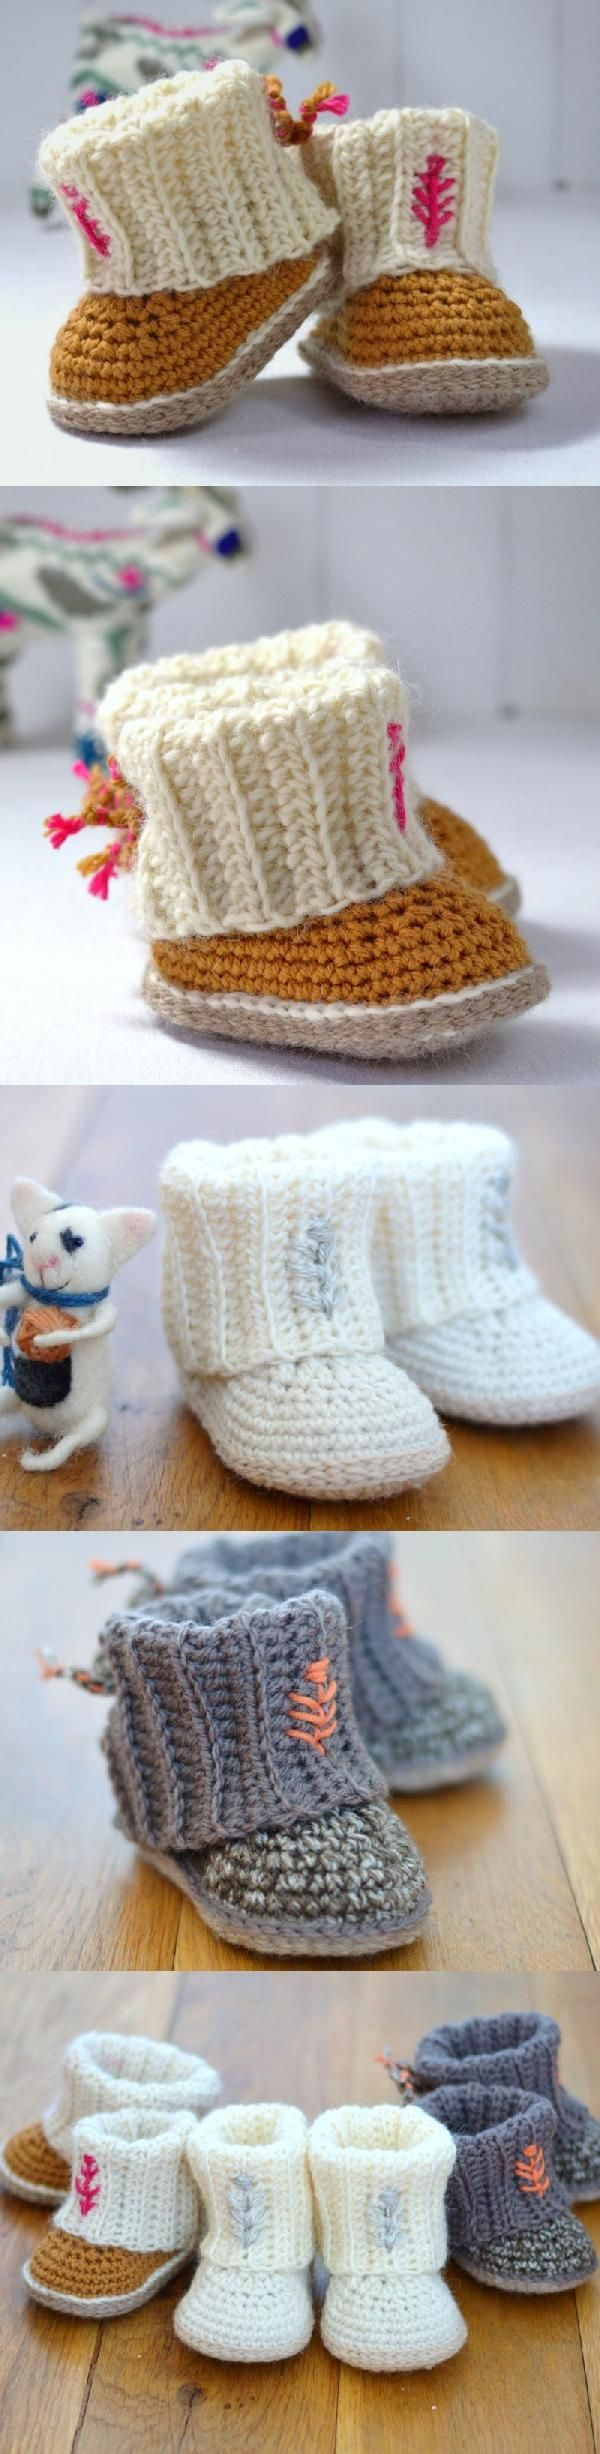 Mini Uggs With Rib Cuffs Crochet Pattern